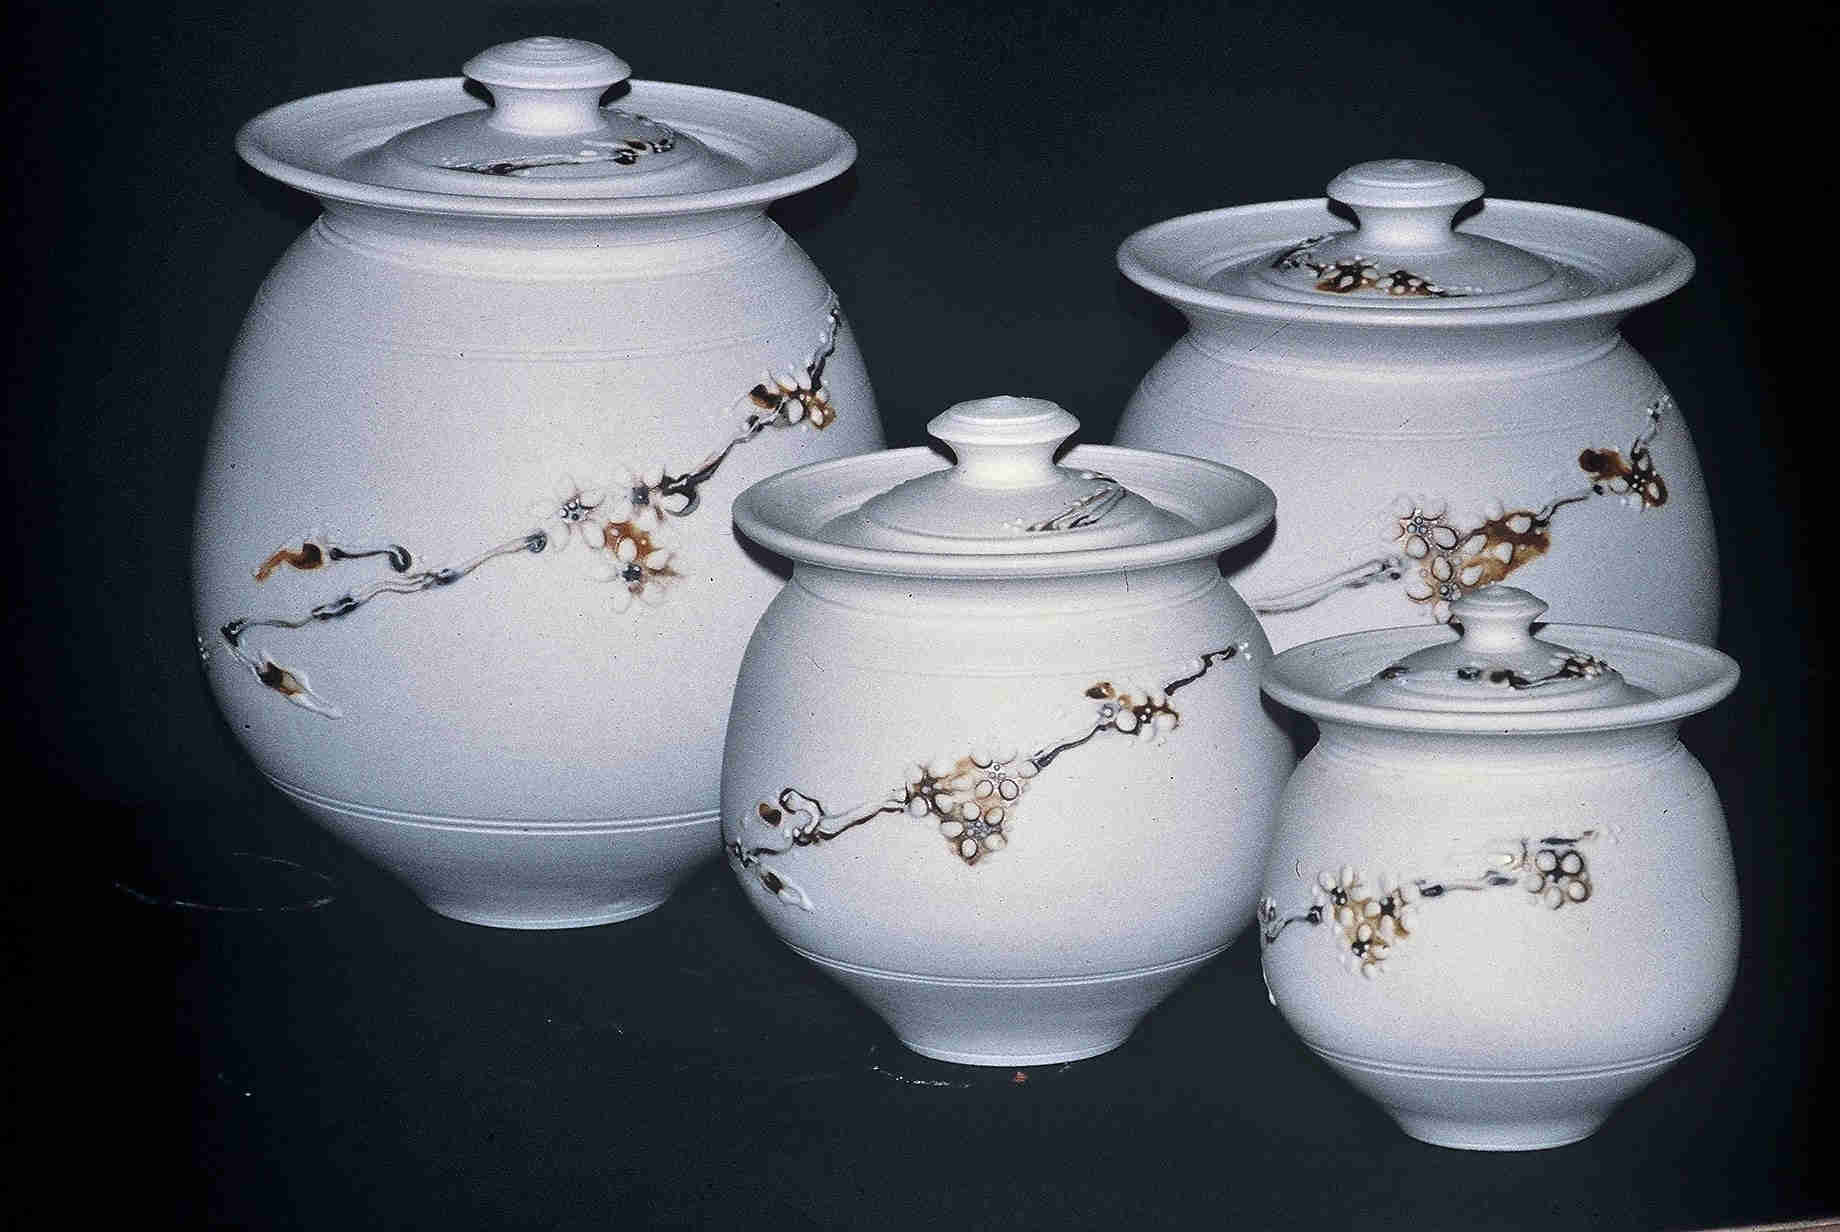 Valerie Metcalfe. Cannister Set. 1980. Porcelain ( unglazed). Left to right: 33 cm, 22.9 cm, 27. 9 cm, and 17.8 cm.